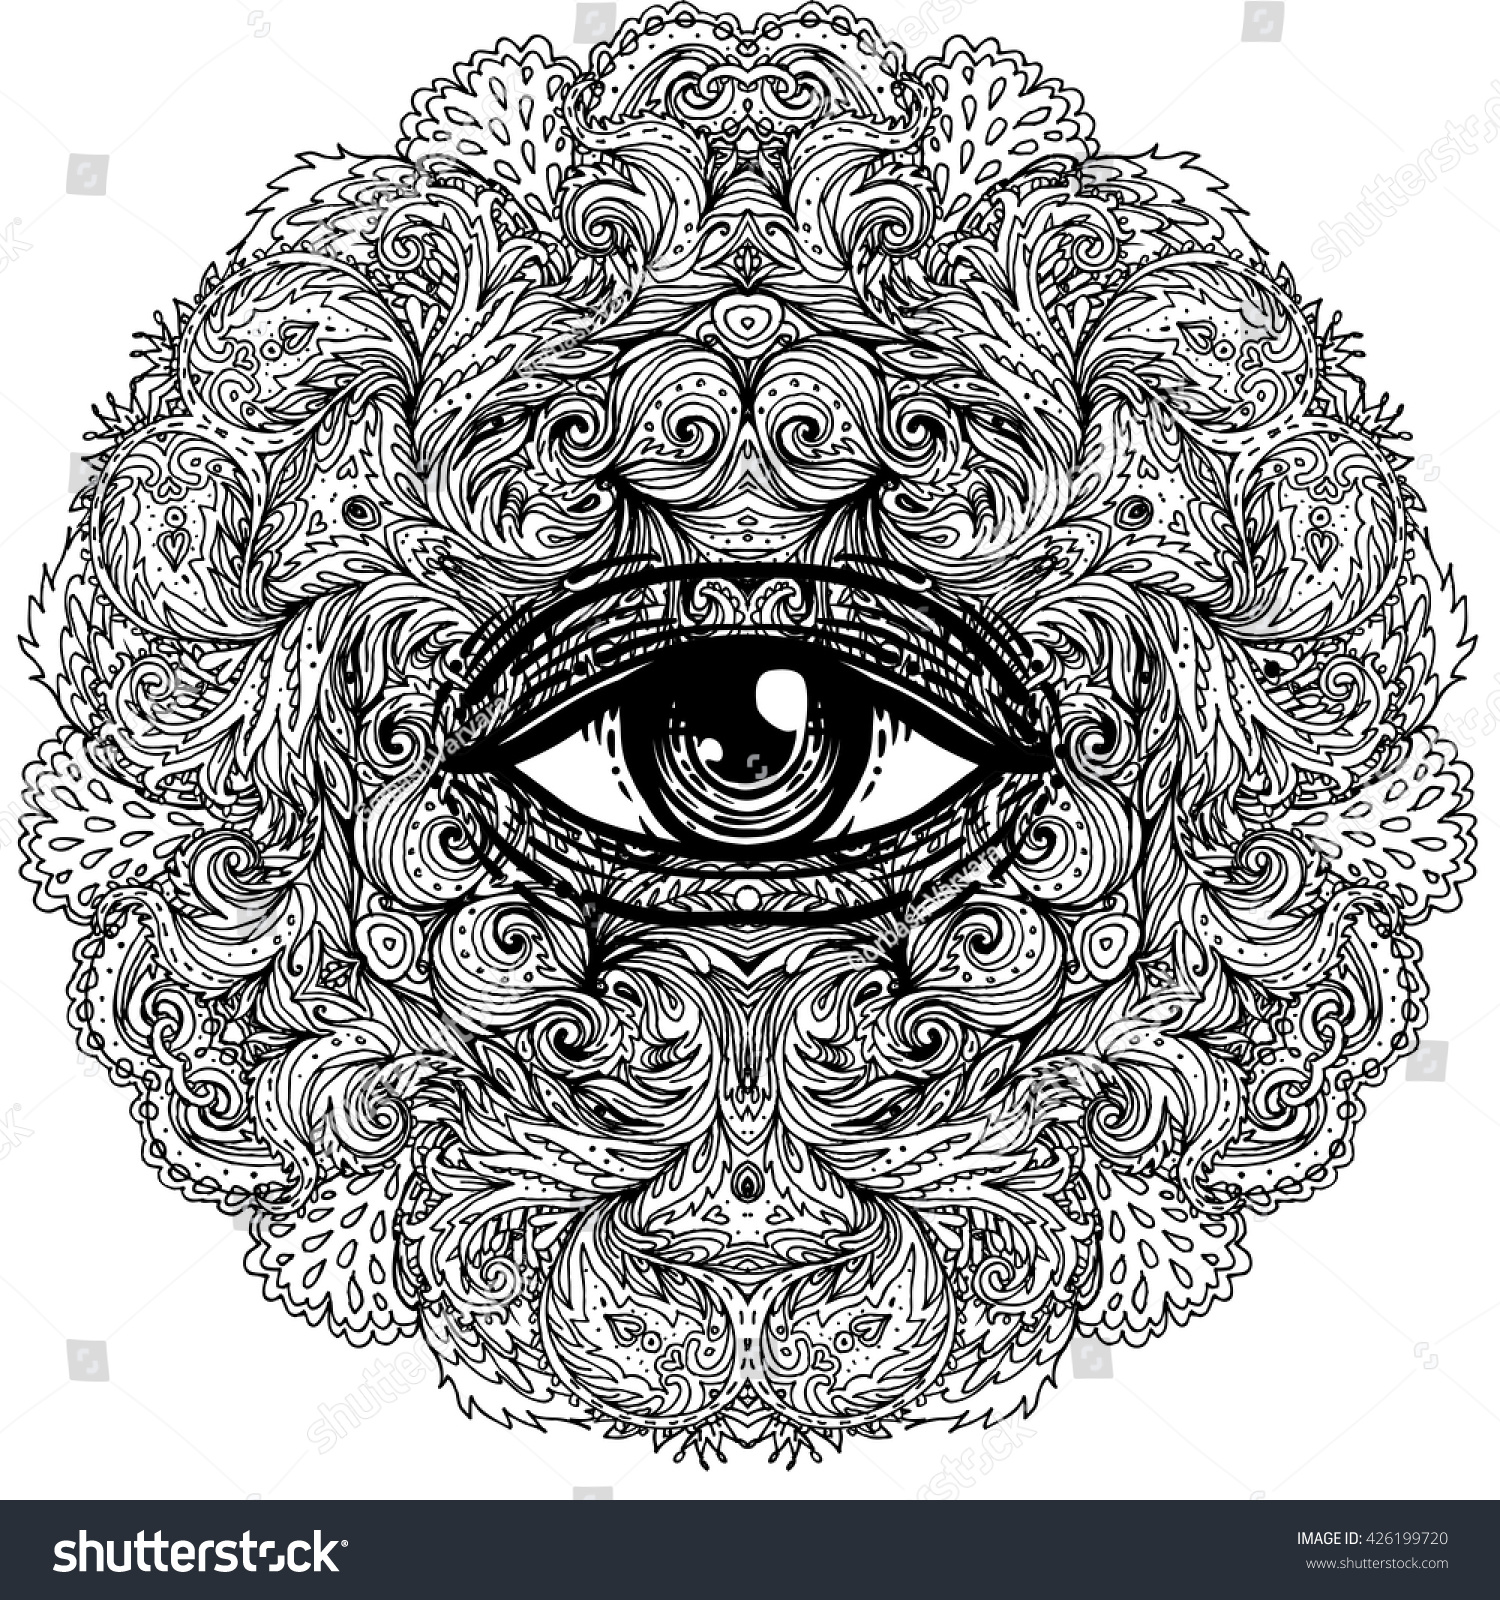 Mystical mandala coloring pages - All Seeing Eye In Ornate Round Mandala Pattern Mystic Alchemy Occult Concept